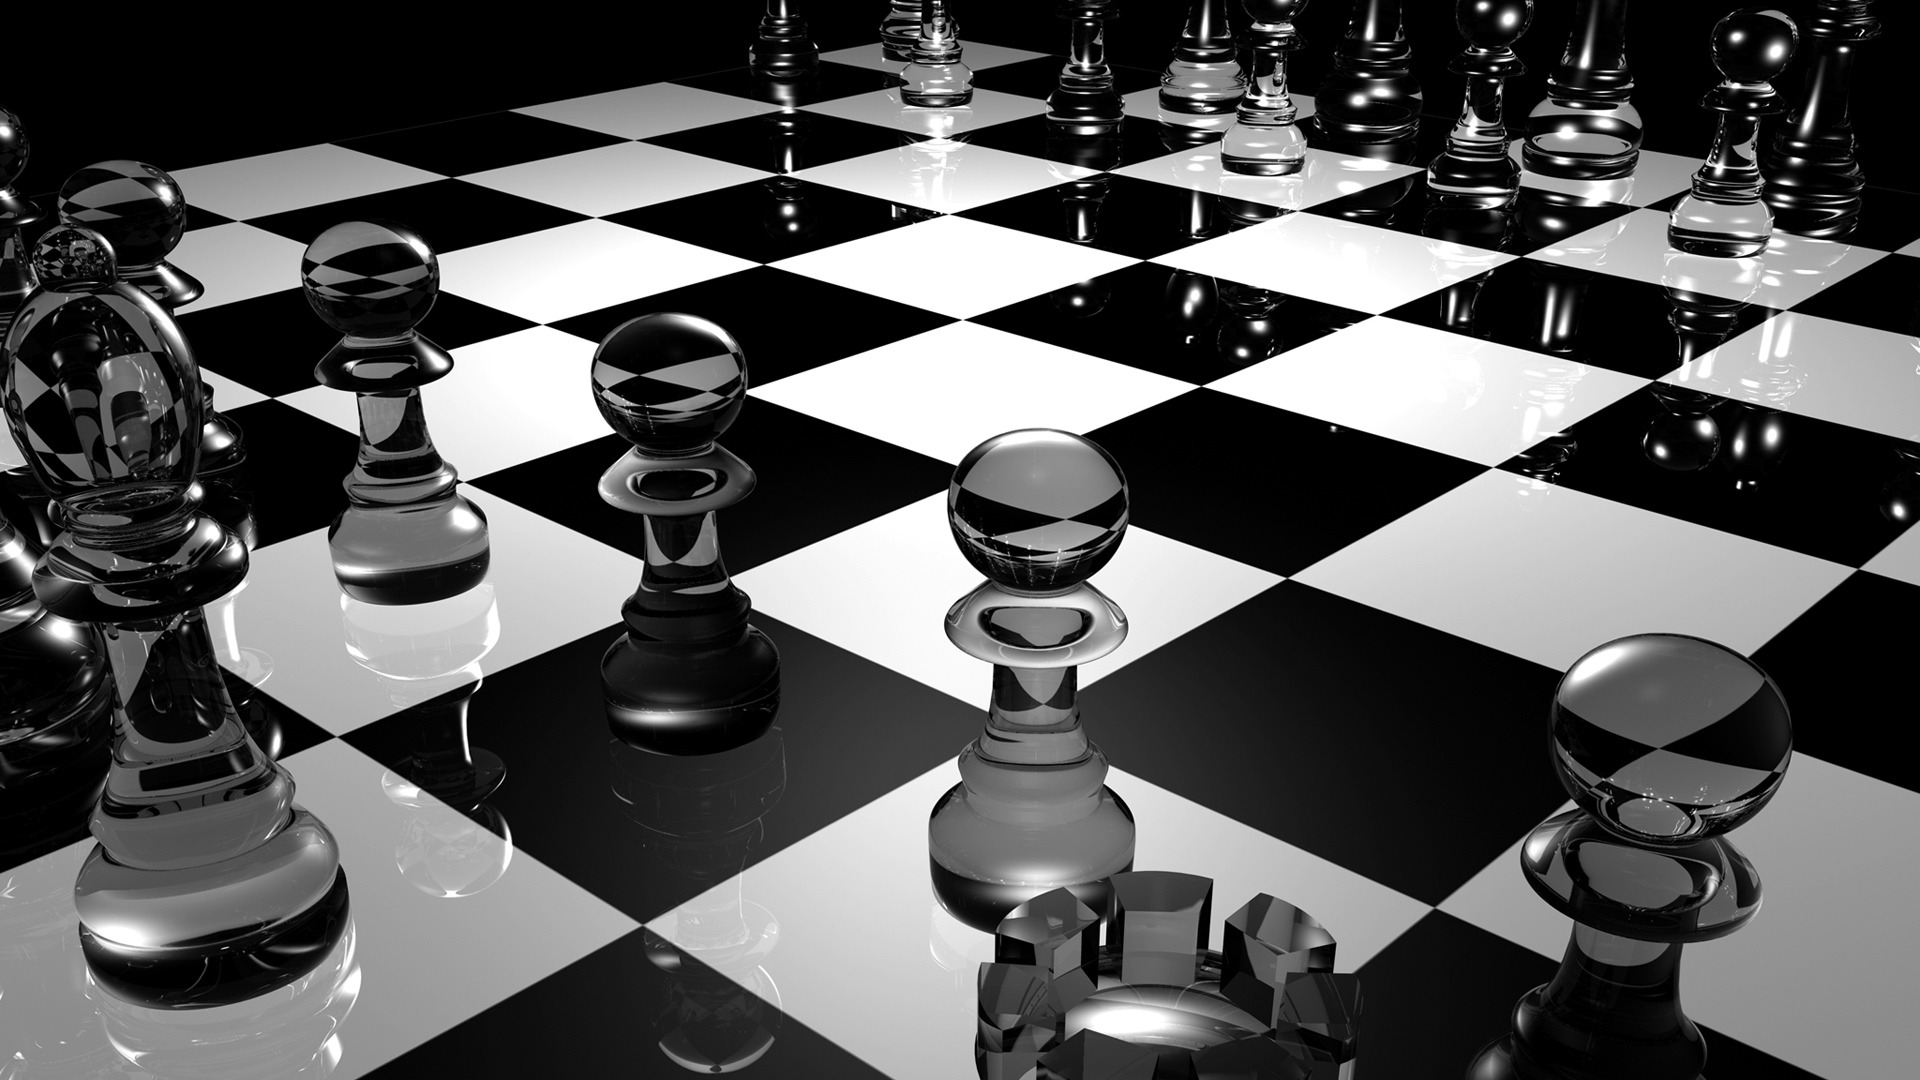 3D Chess Board Wallpaper 3D Models 3D Wallpapers in jpg format for